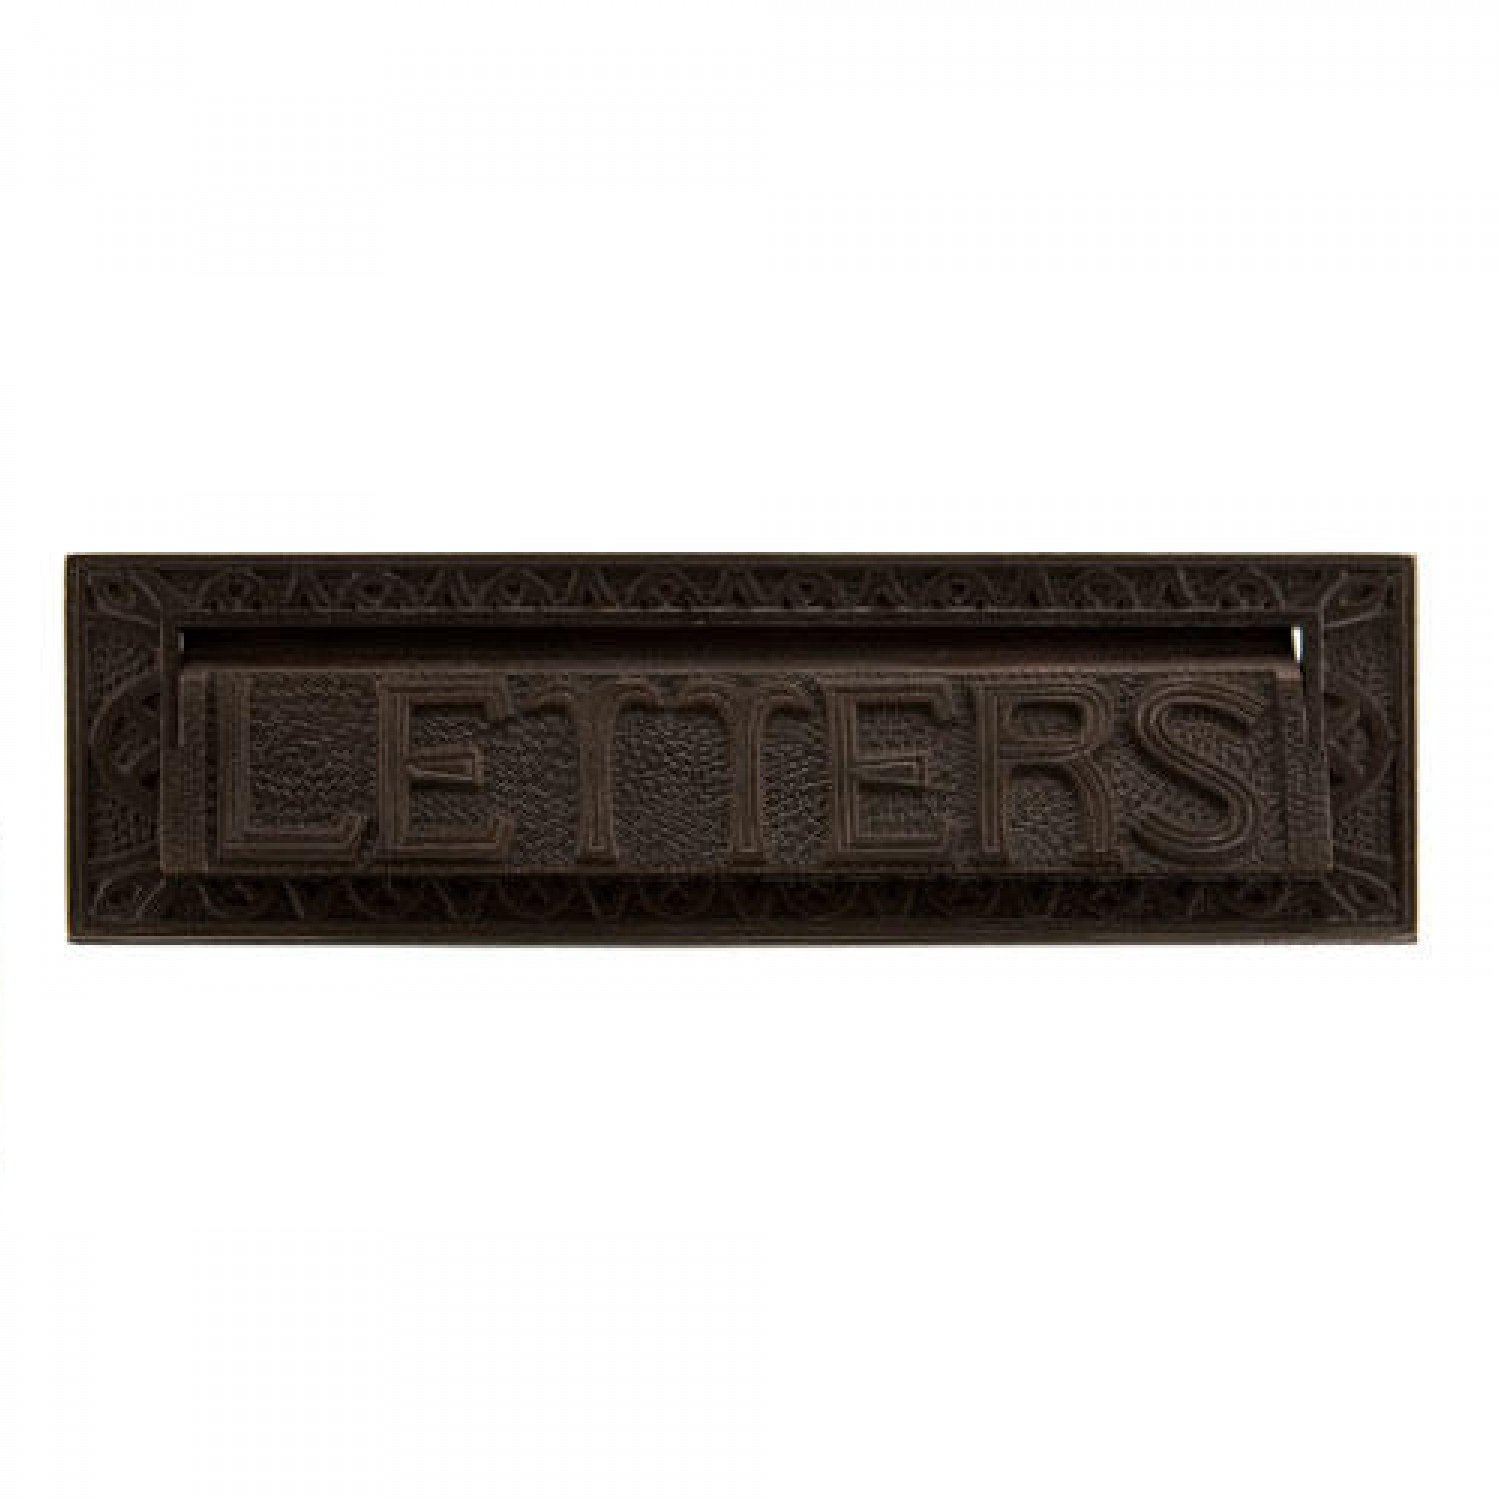 Naiture 13'' Heavy Duty''Mail'' Letter Slot in Bronze Patina Finish